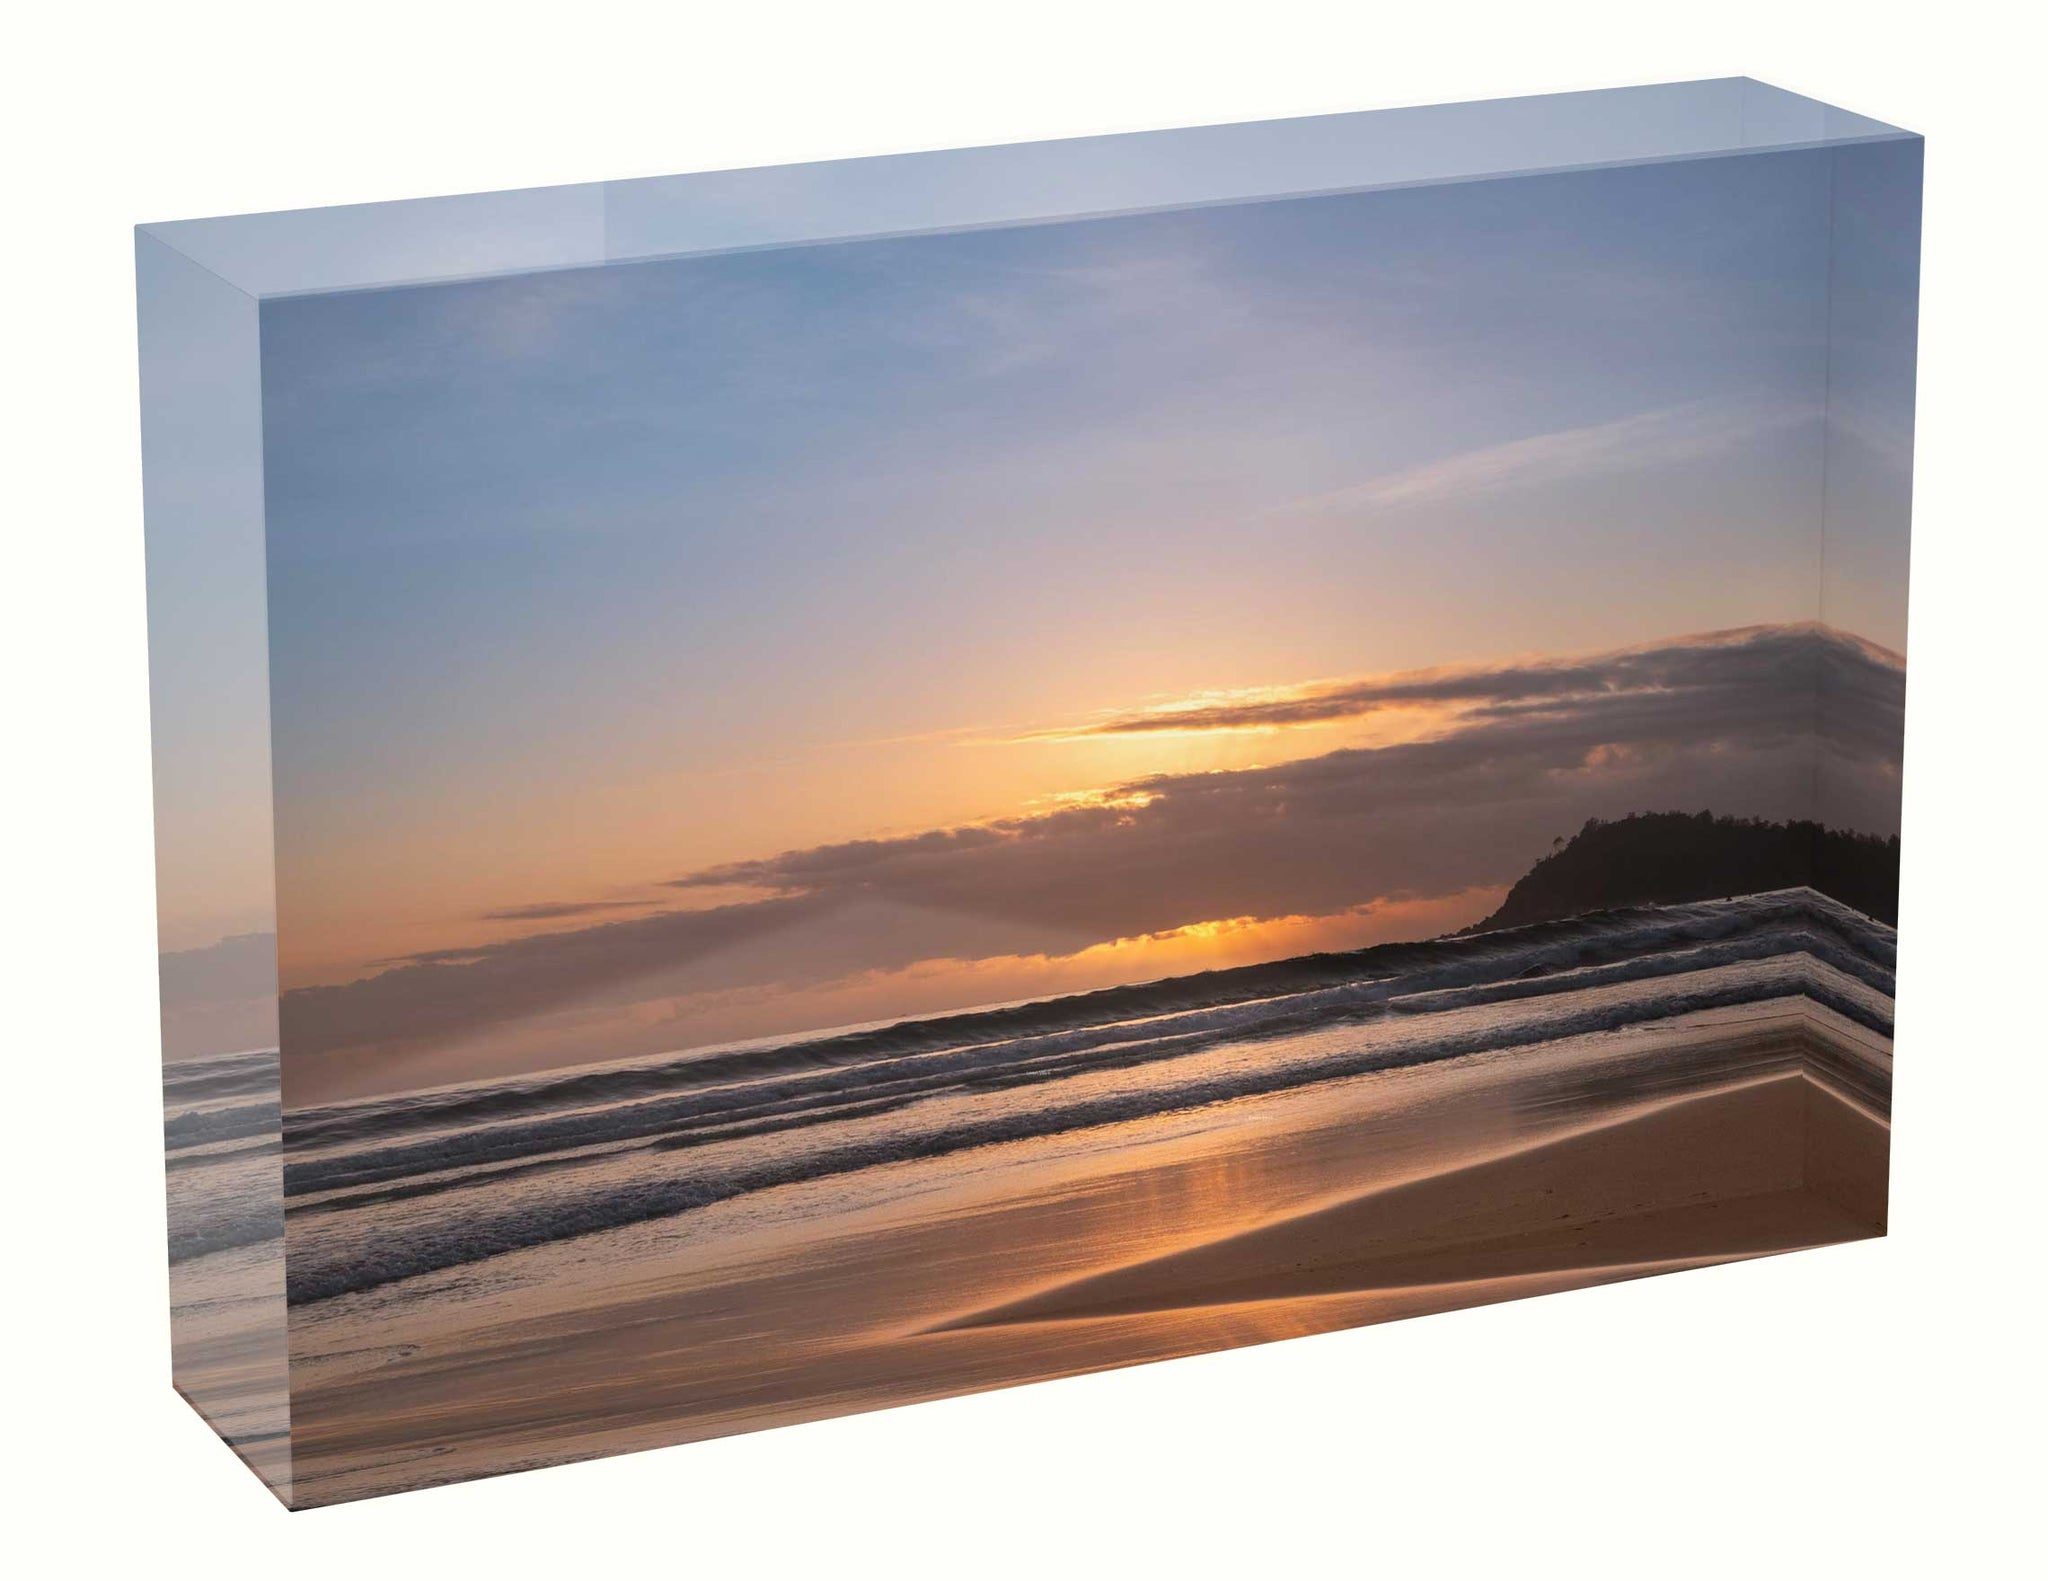 Acrylic block sunrise photo 1 March 2020 Manly beach, Sydney